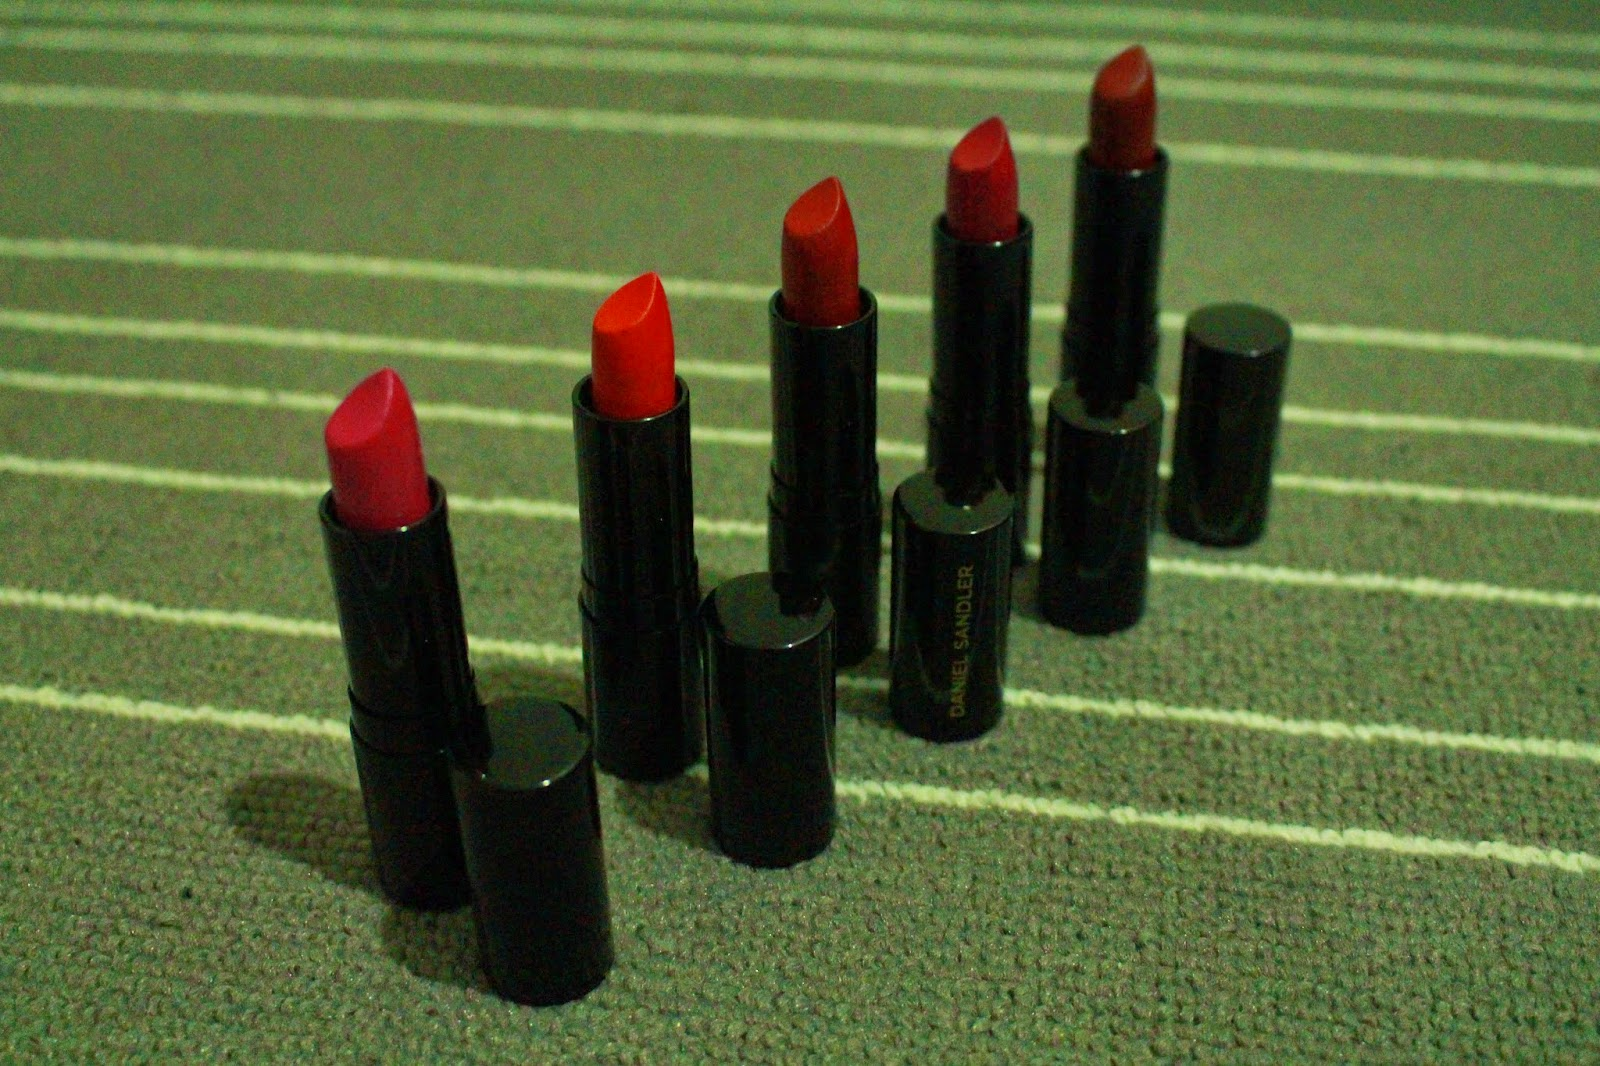 Daniel Sandler Luxury Matte Lipsticks (Casablanca, Valentina, Gi Gi, Marilyn and Red Carpet)